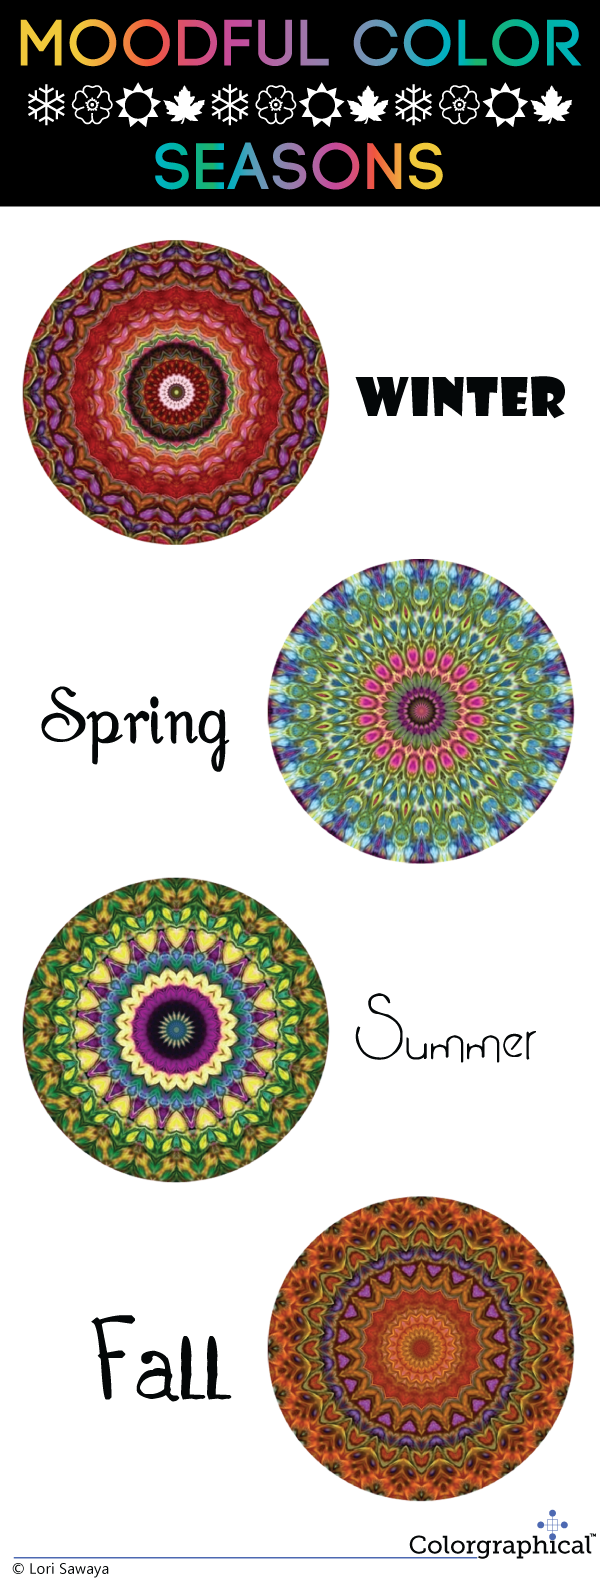 Moodful Color for the Seasons